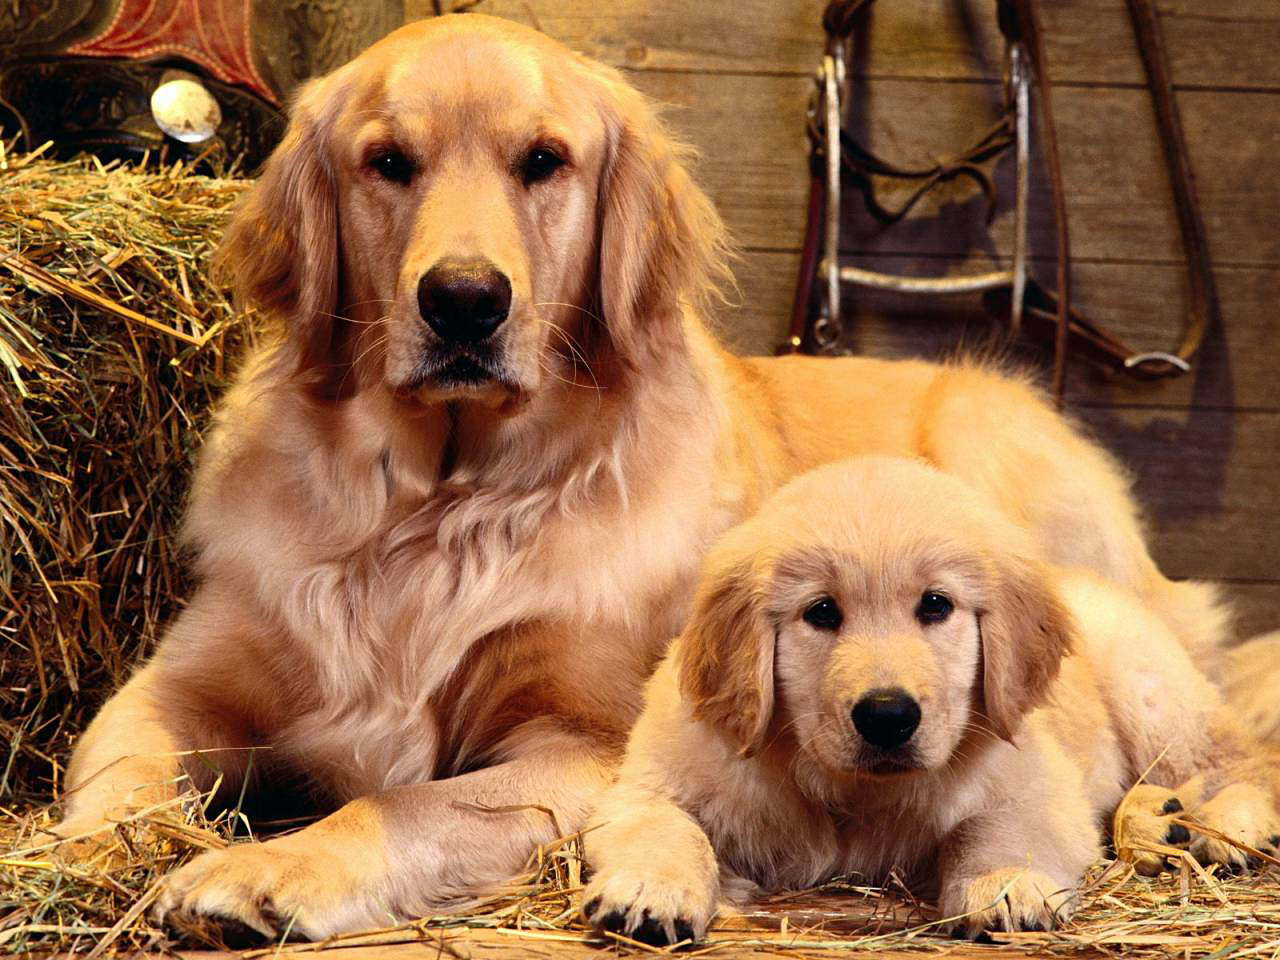 Dog And Puppy Wallpaper Wallpaper ME 1280x960